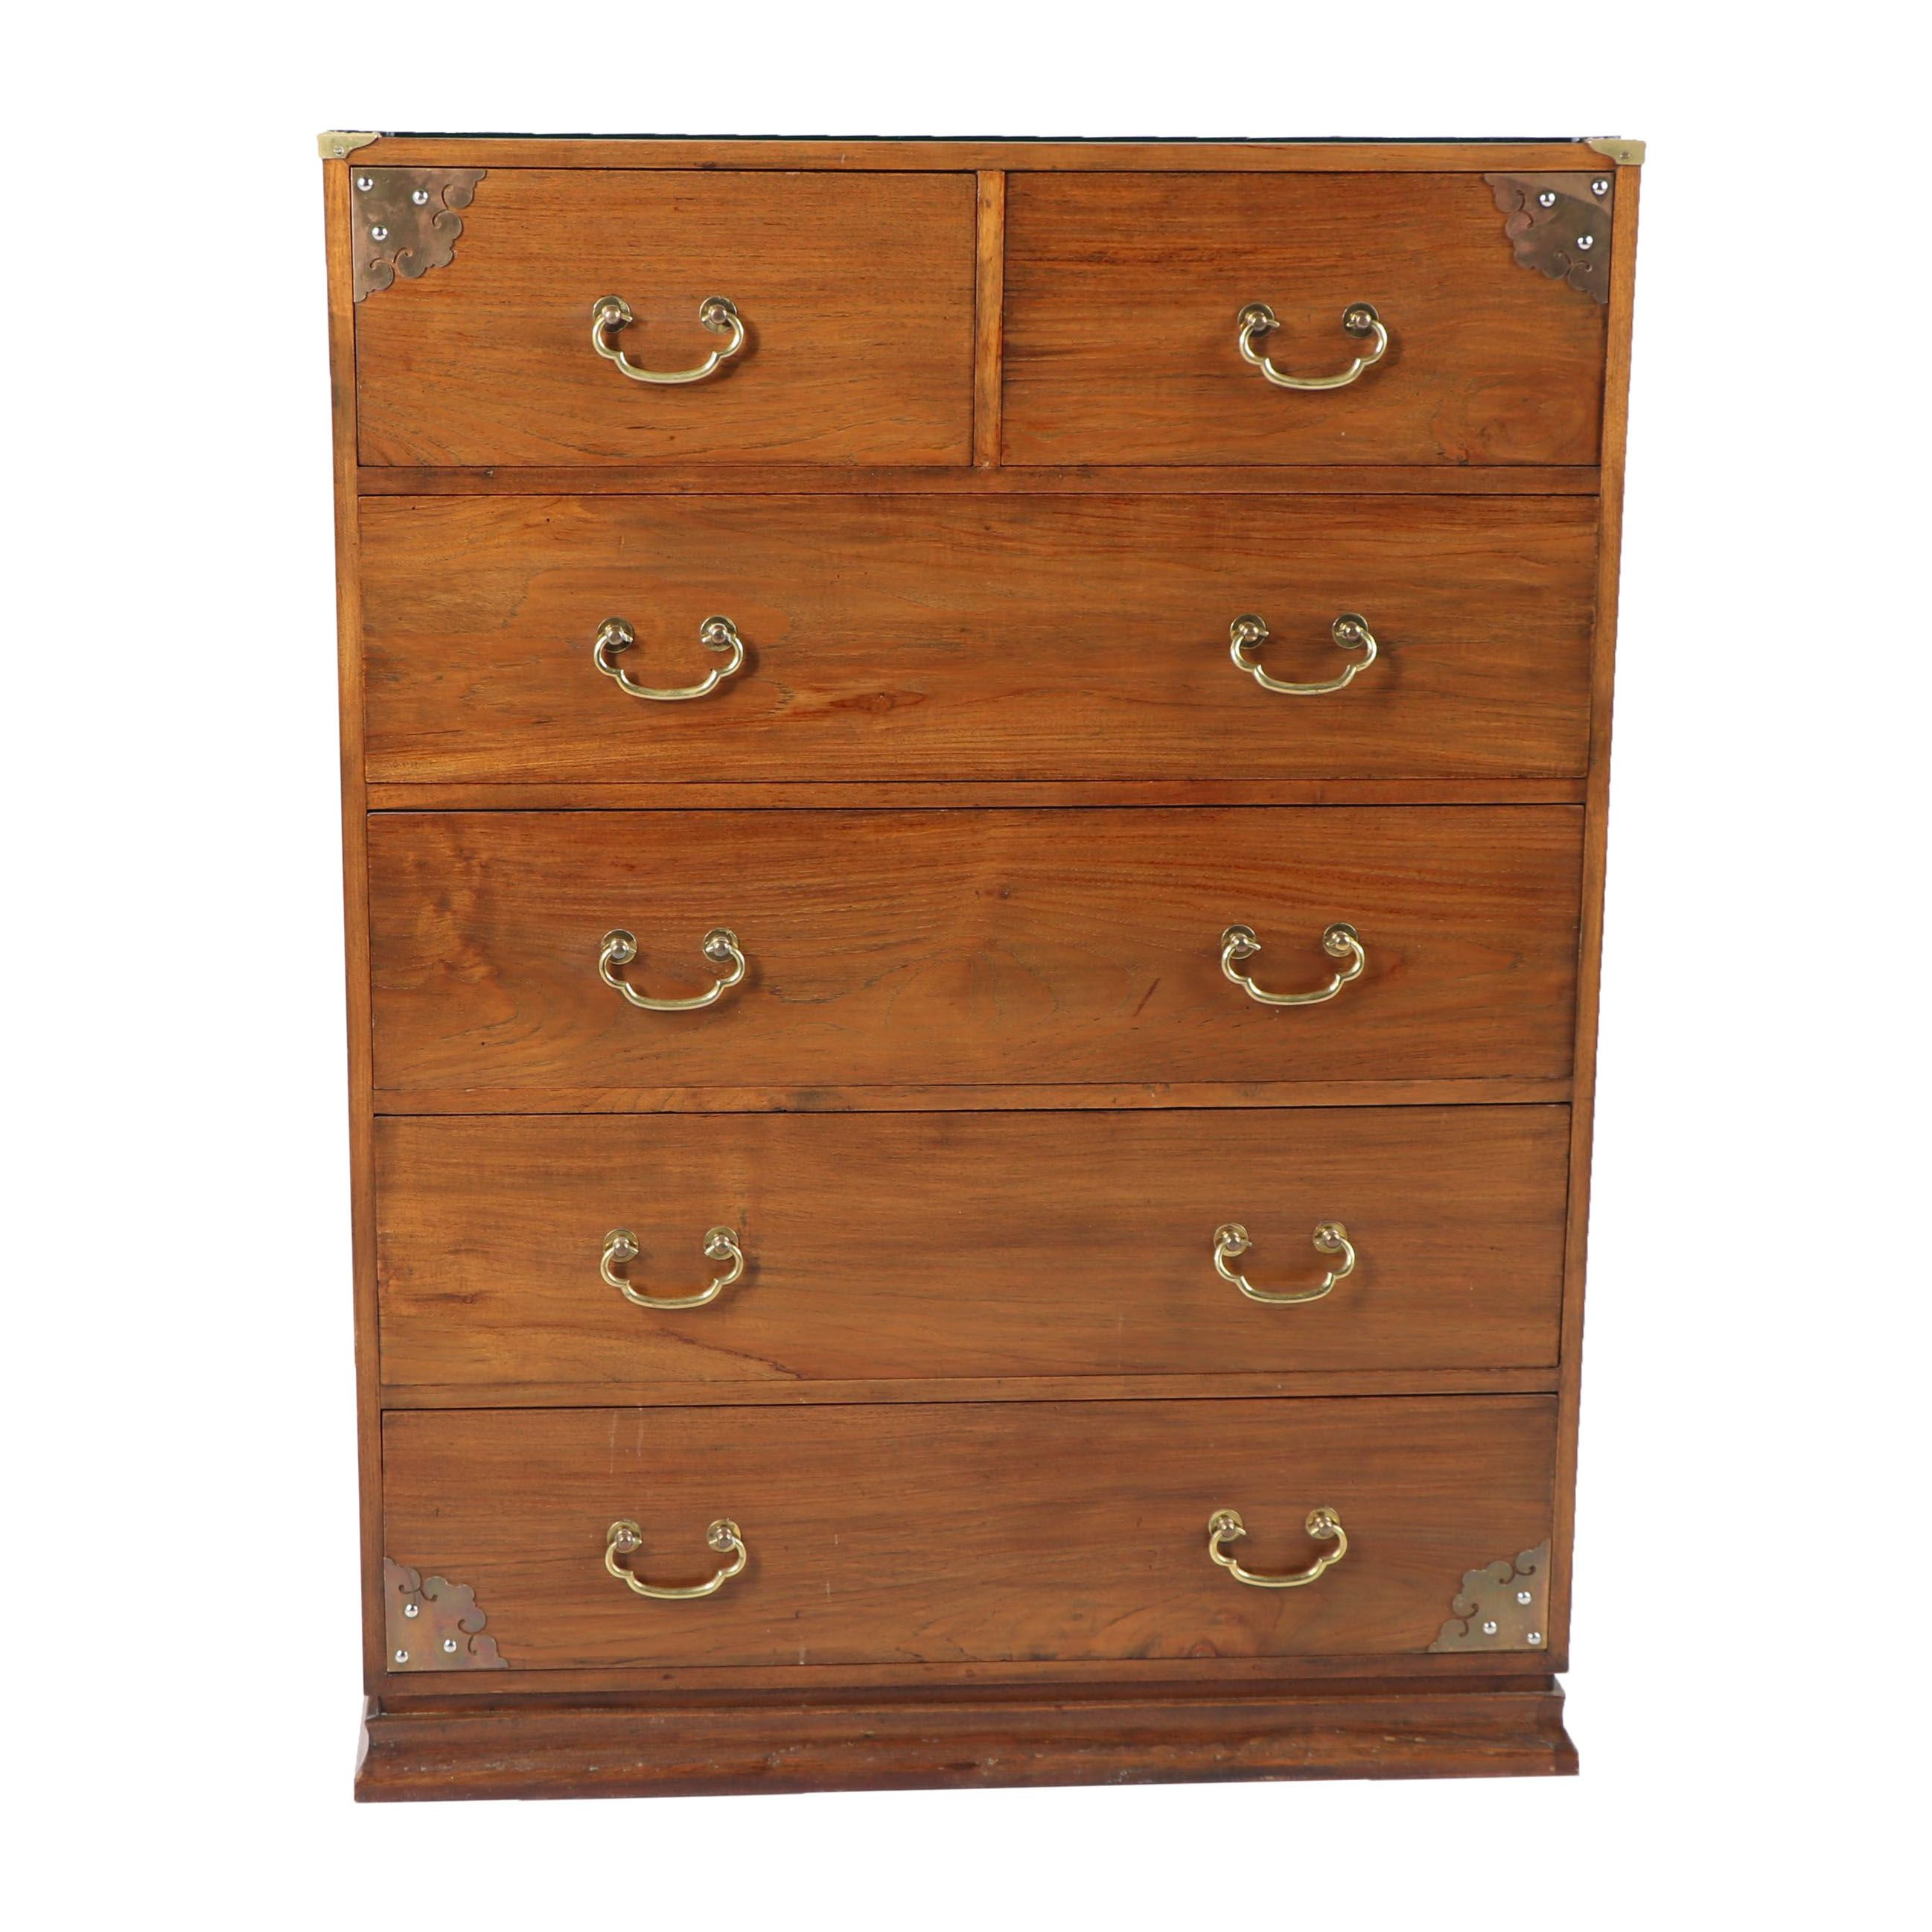 Vintage Chinese Style Chest of Drawers